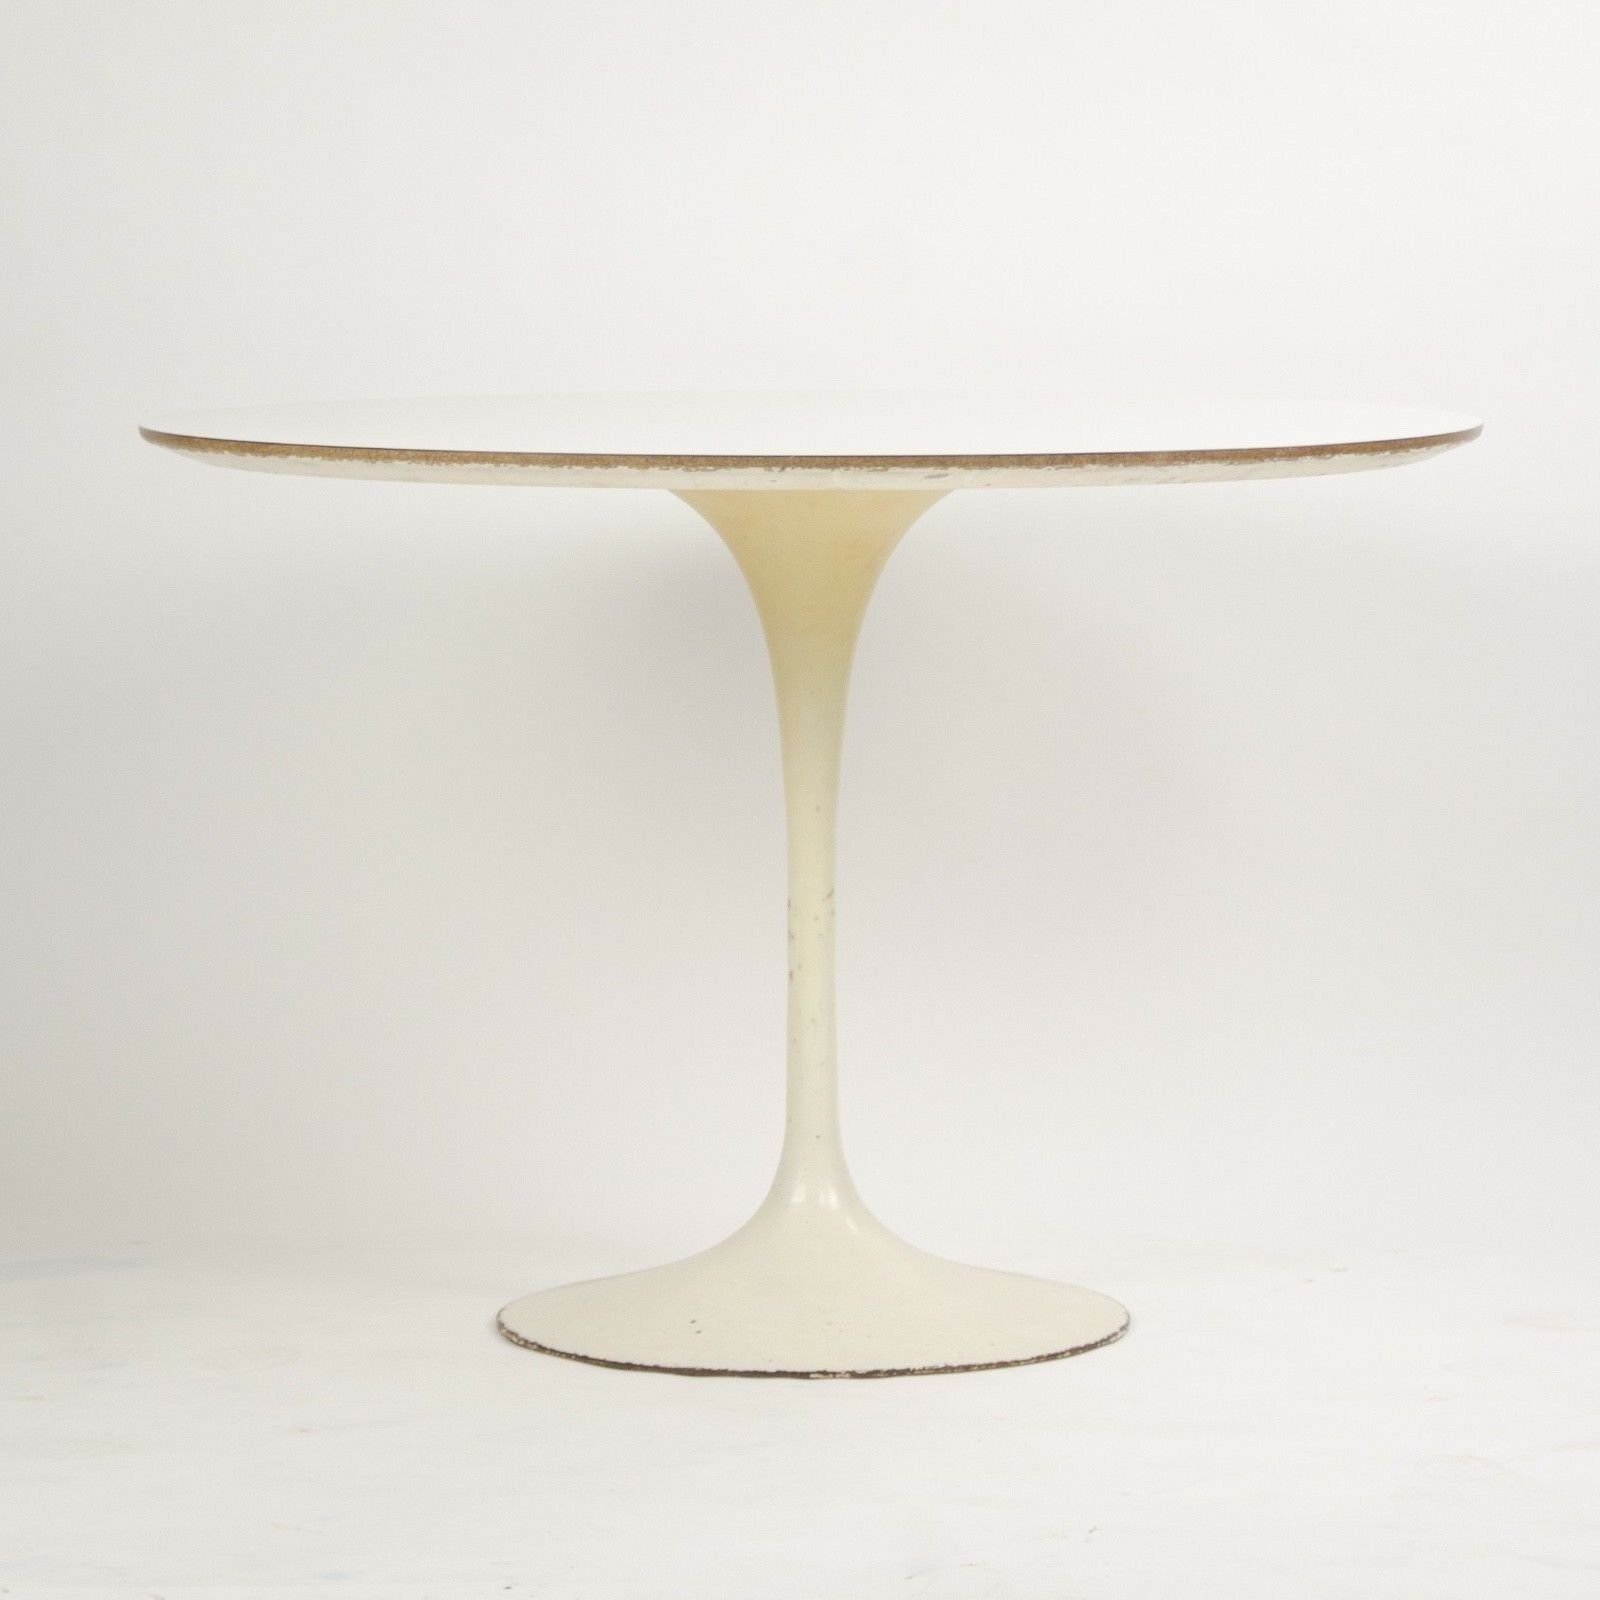 Saarinen Knoll Table Details About 1960 S Eero Saarinen For Knoll 42 Inch Tulip Cafe Dining Table Marked